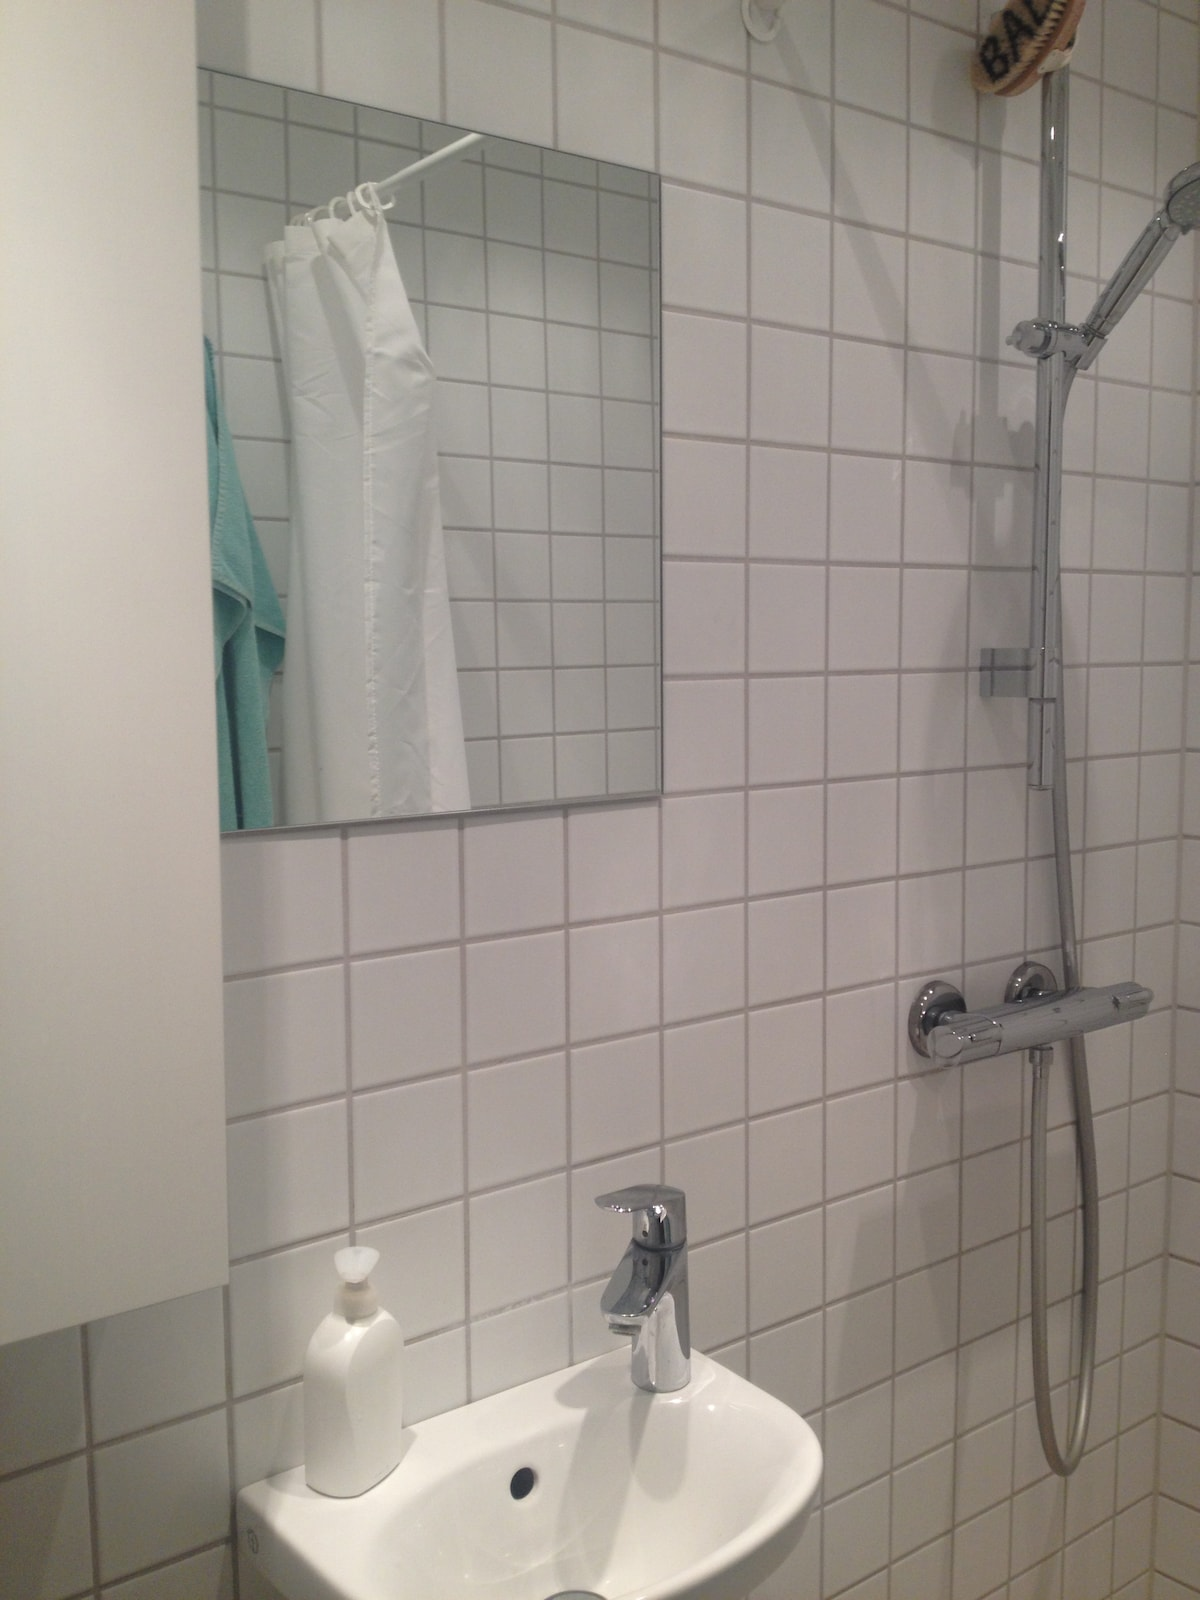 A small bathroom with shower.